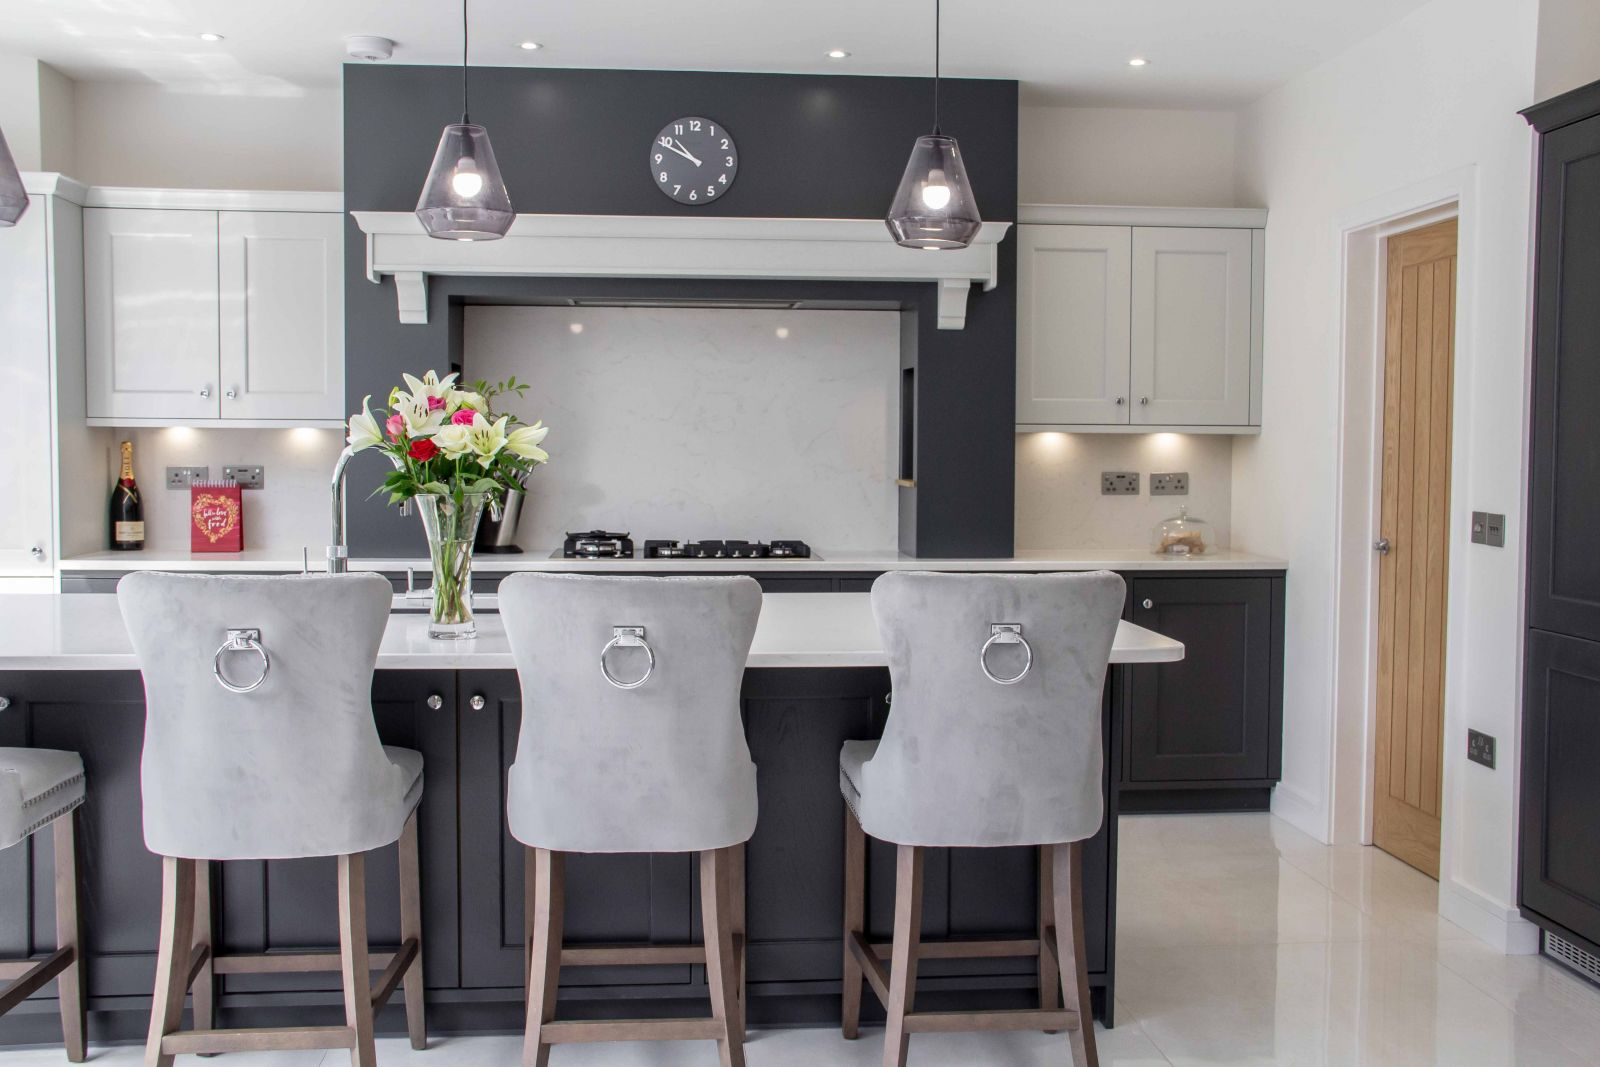 Classic Shaker Kitchen in Grey and White with Breakfast Bar by Sigma 3 Kitchens